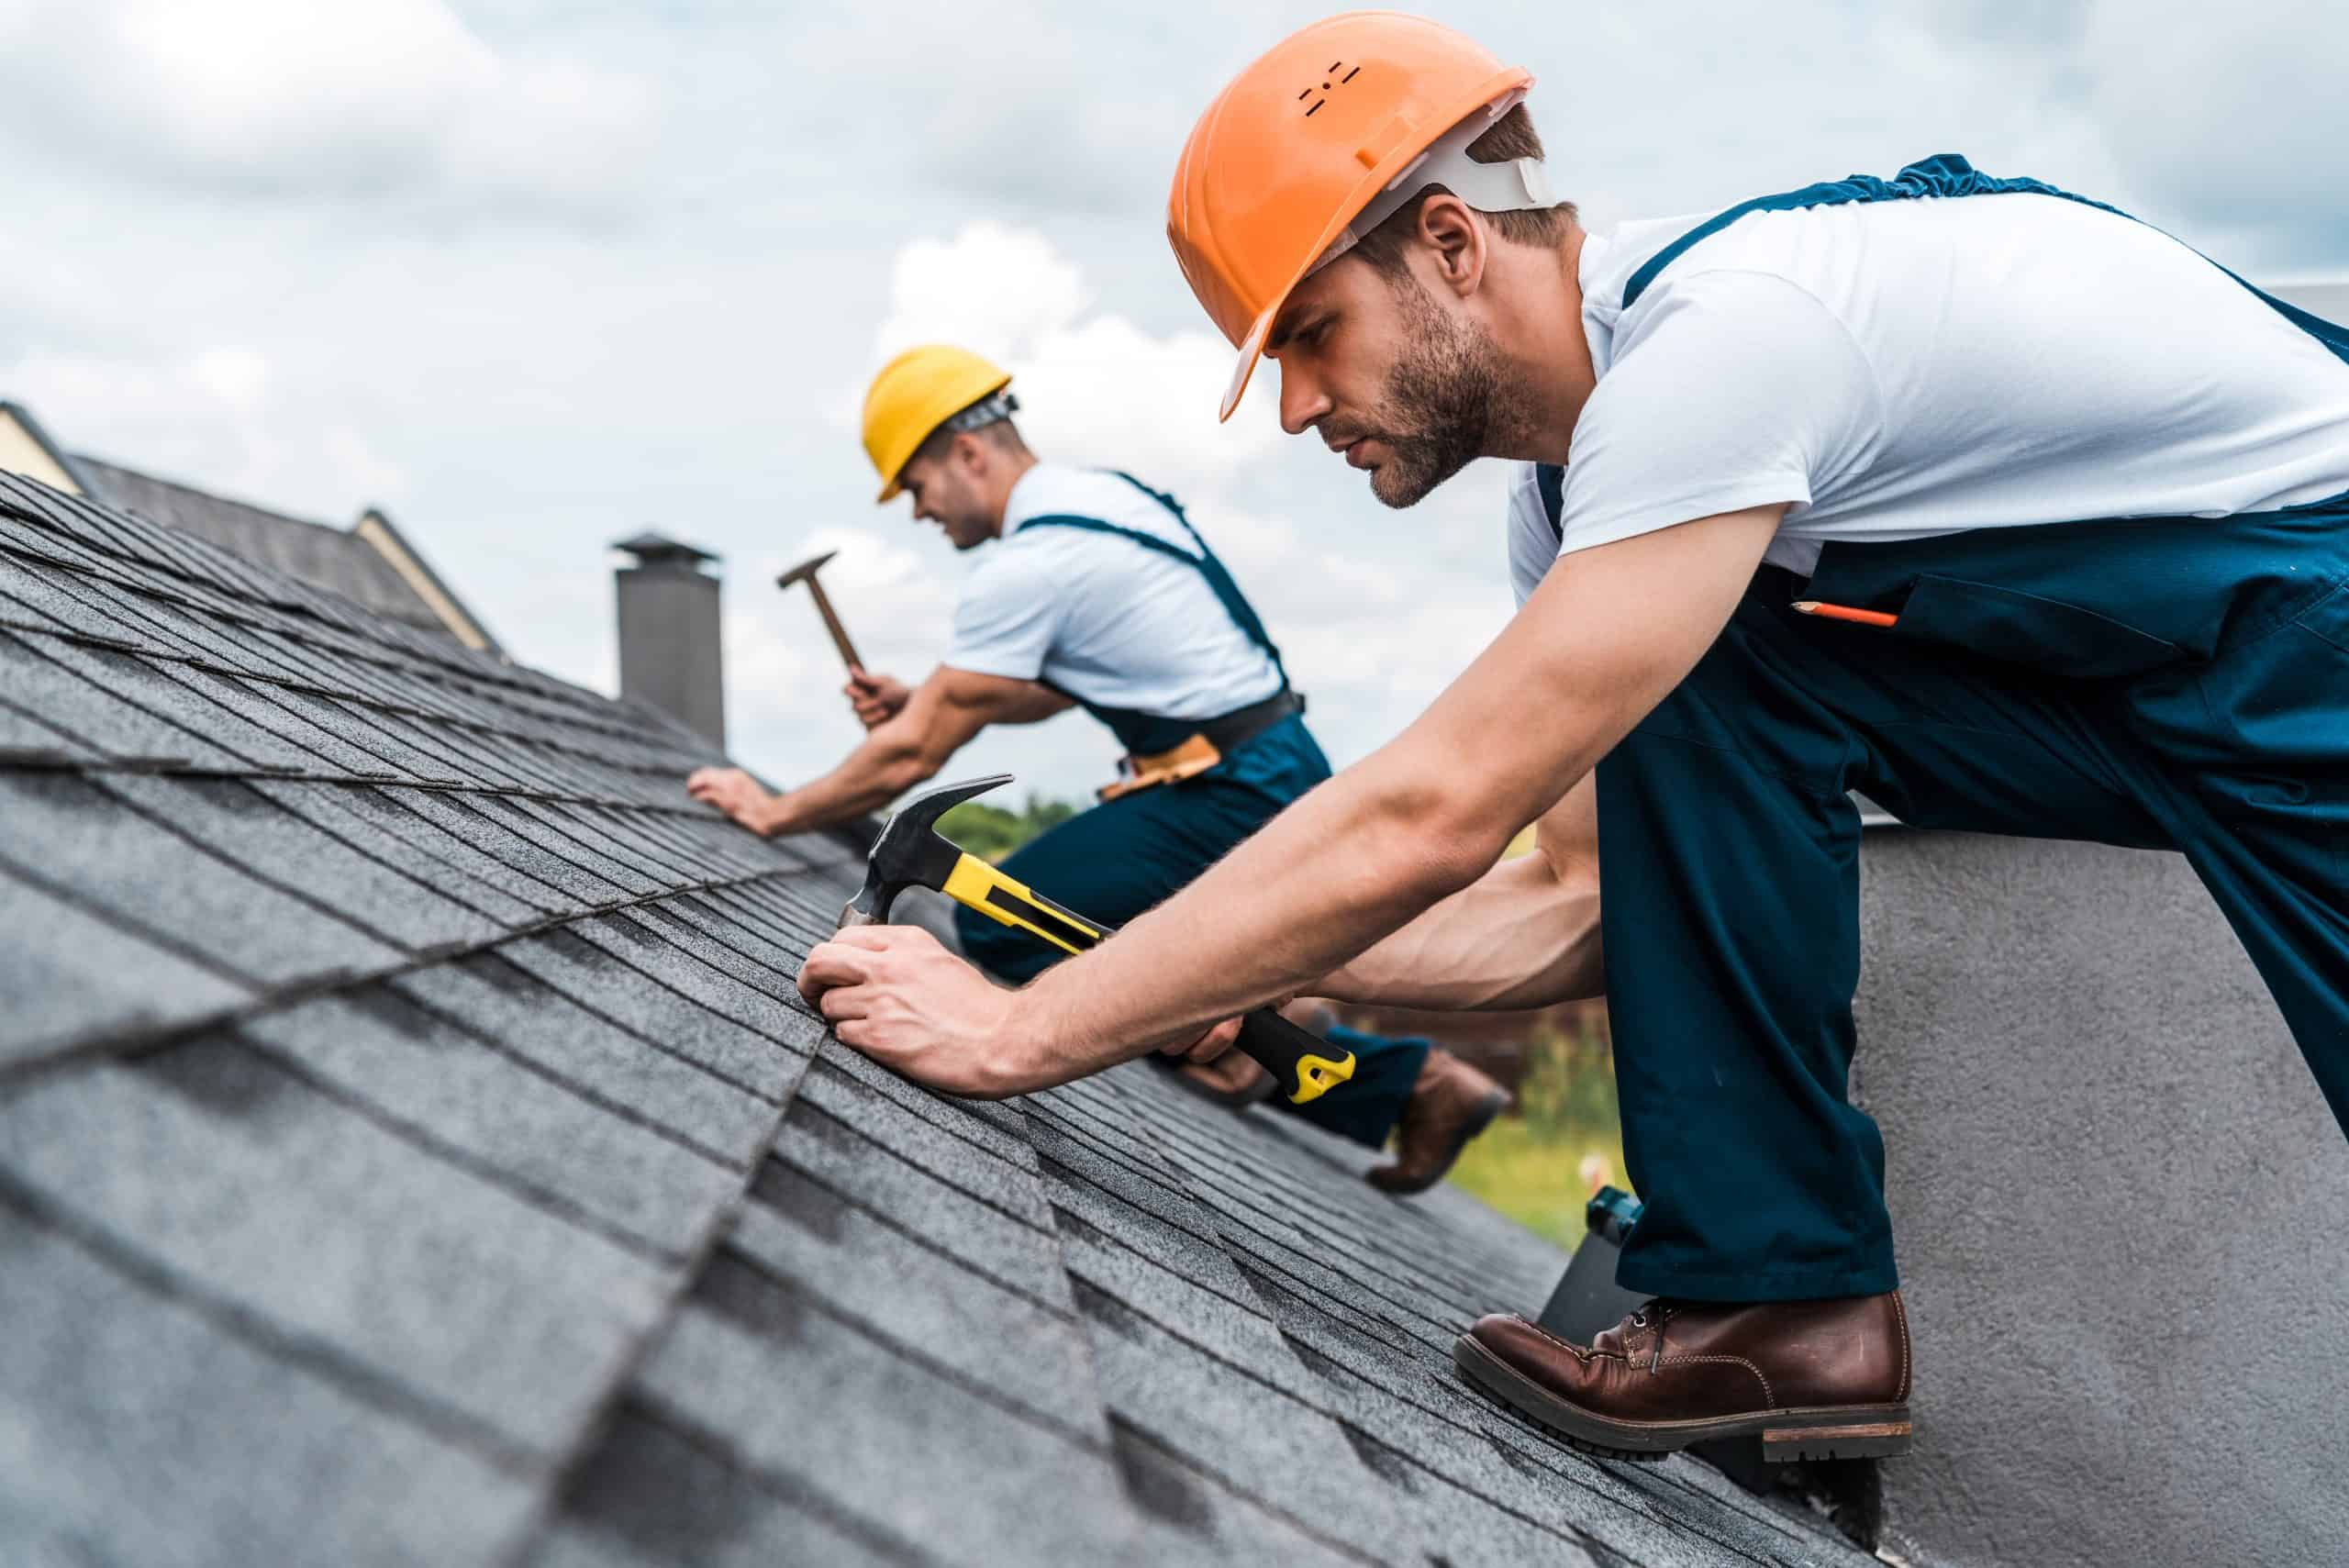 INSURANCE DECLARATIONS ARE NOT HARD FOR ROOFERS